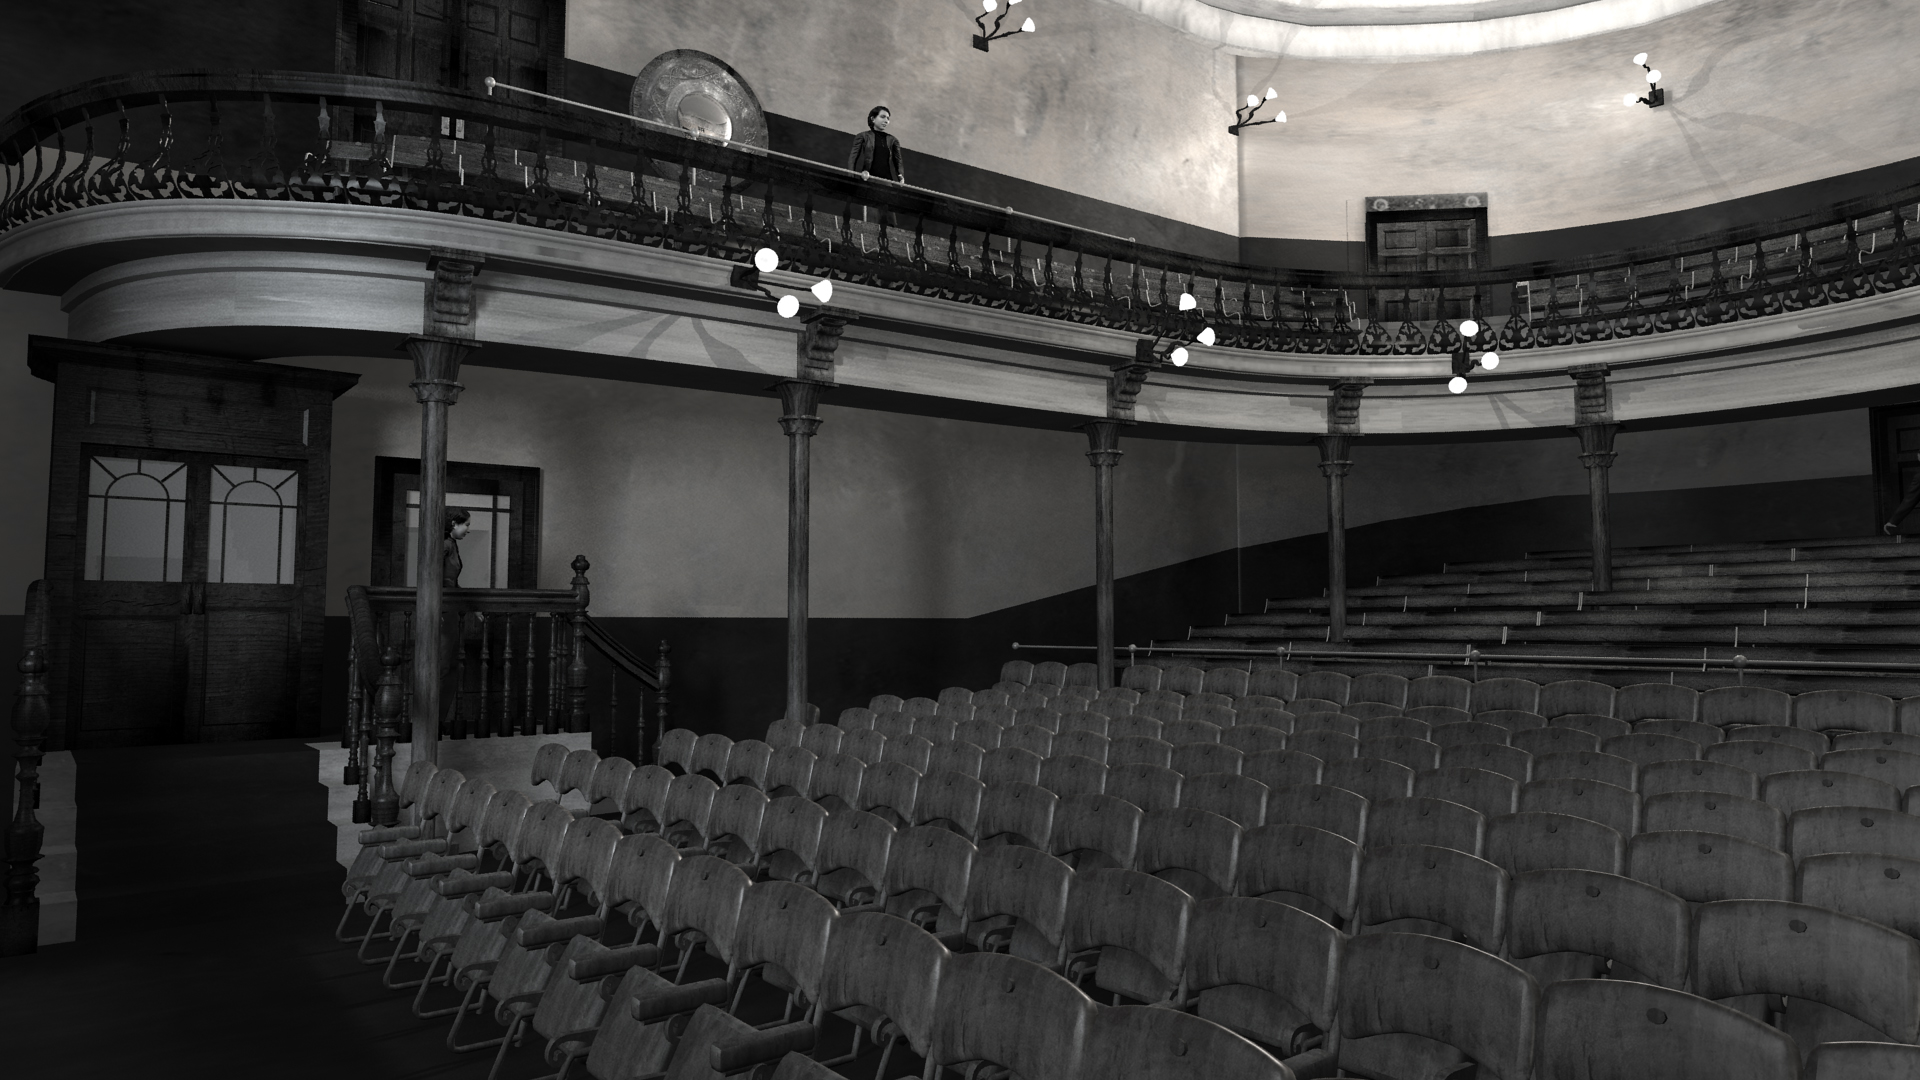 View of auditorium of Abbey Theatre, 1904. Digital model by Hugh Denard (research) and Niall Ó hOisín/Noho (modelling), 2011.